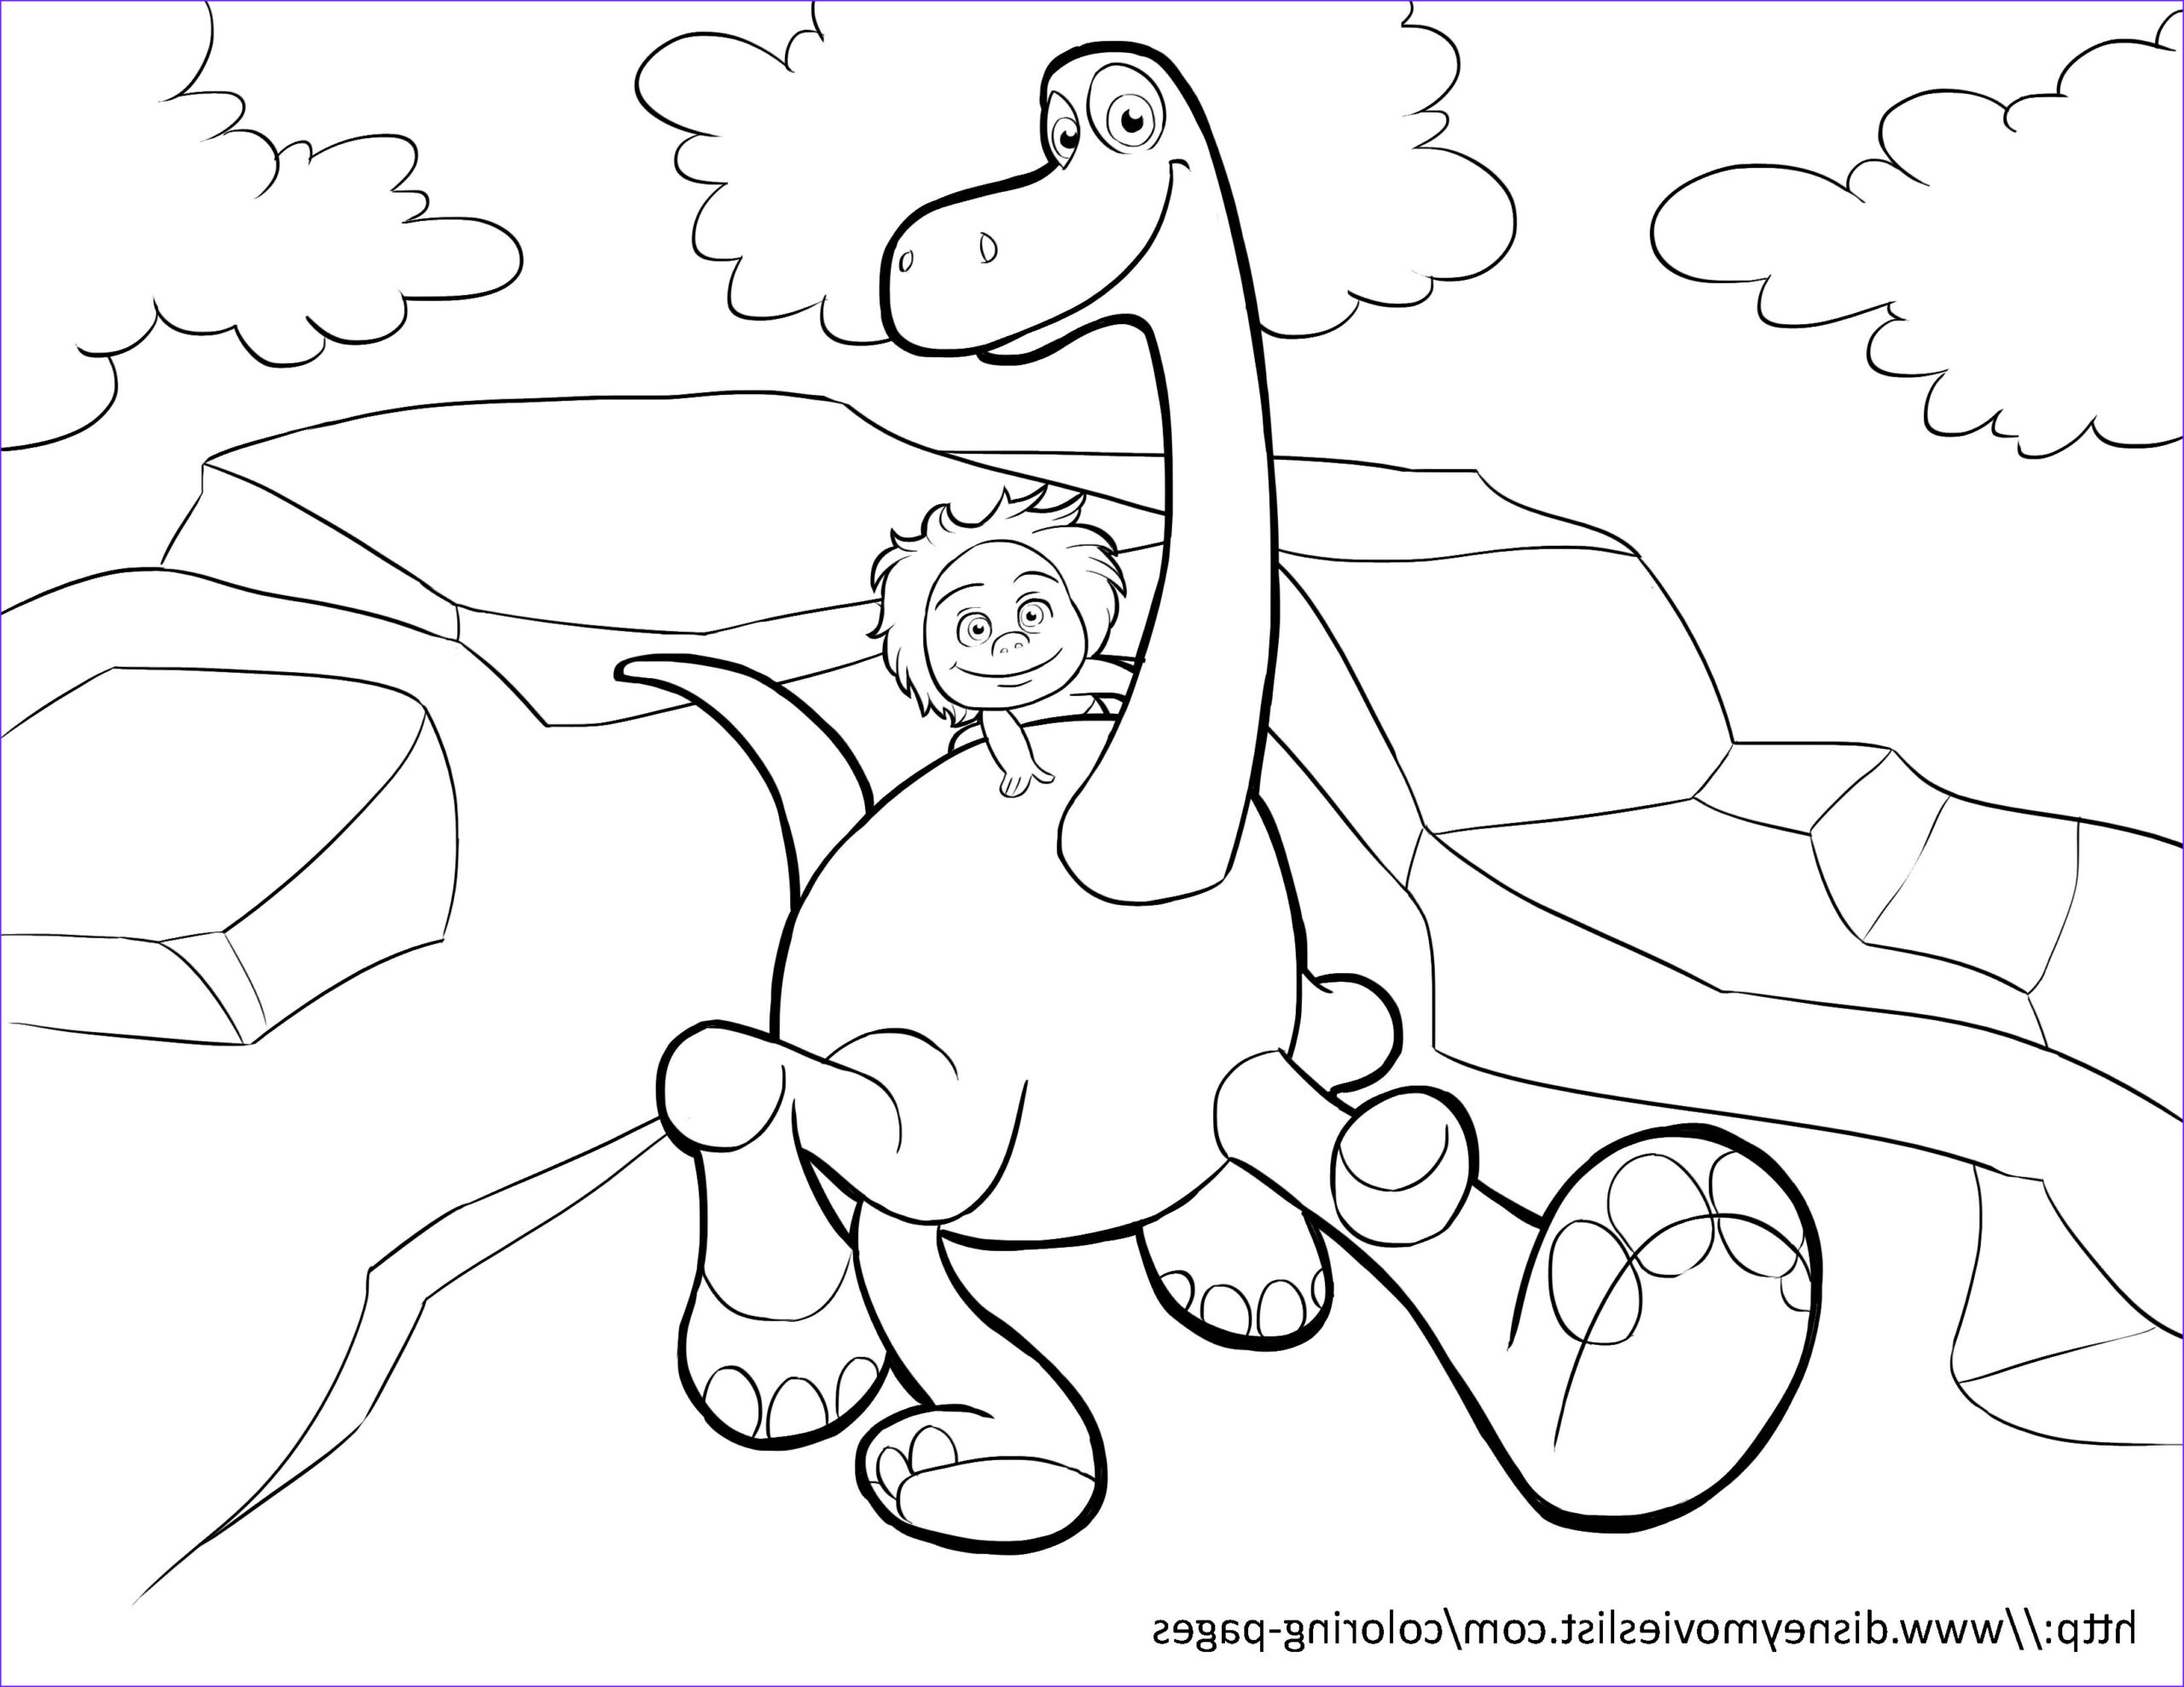 The Good Dinosaur Coloring Pages Cool Stock Disney S the Good Dinosaur Coloring Pages Sheet Free